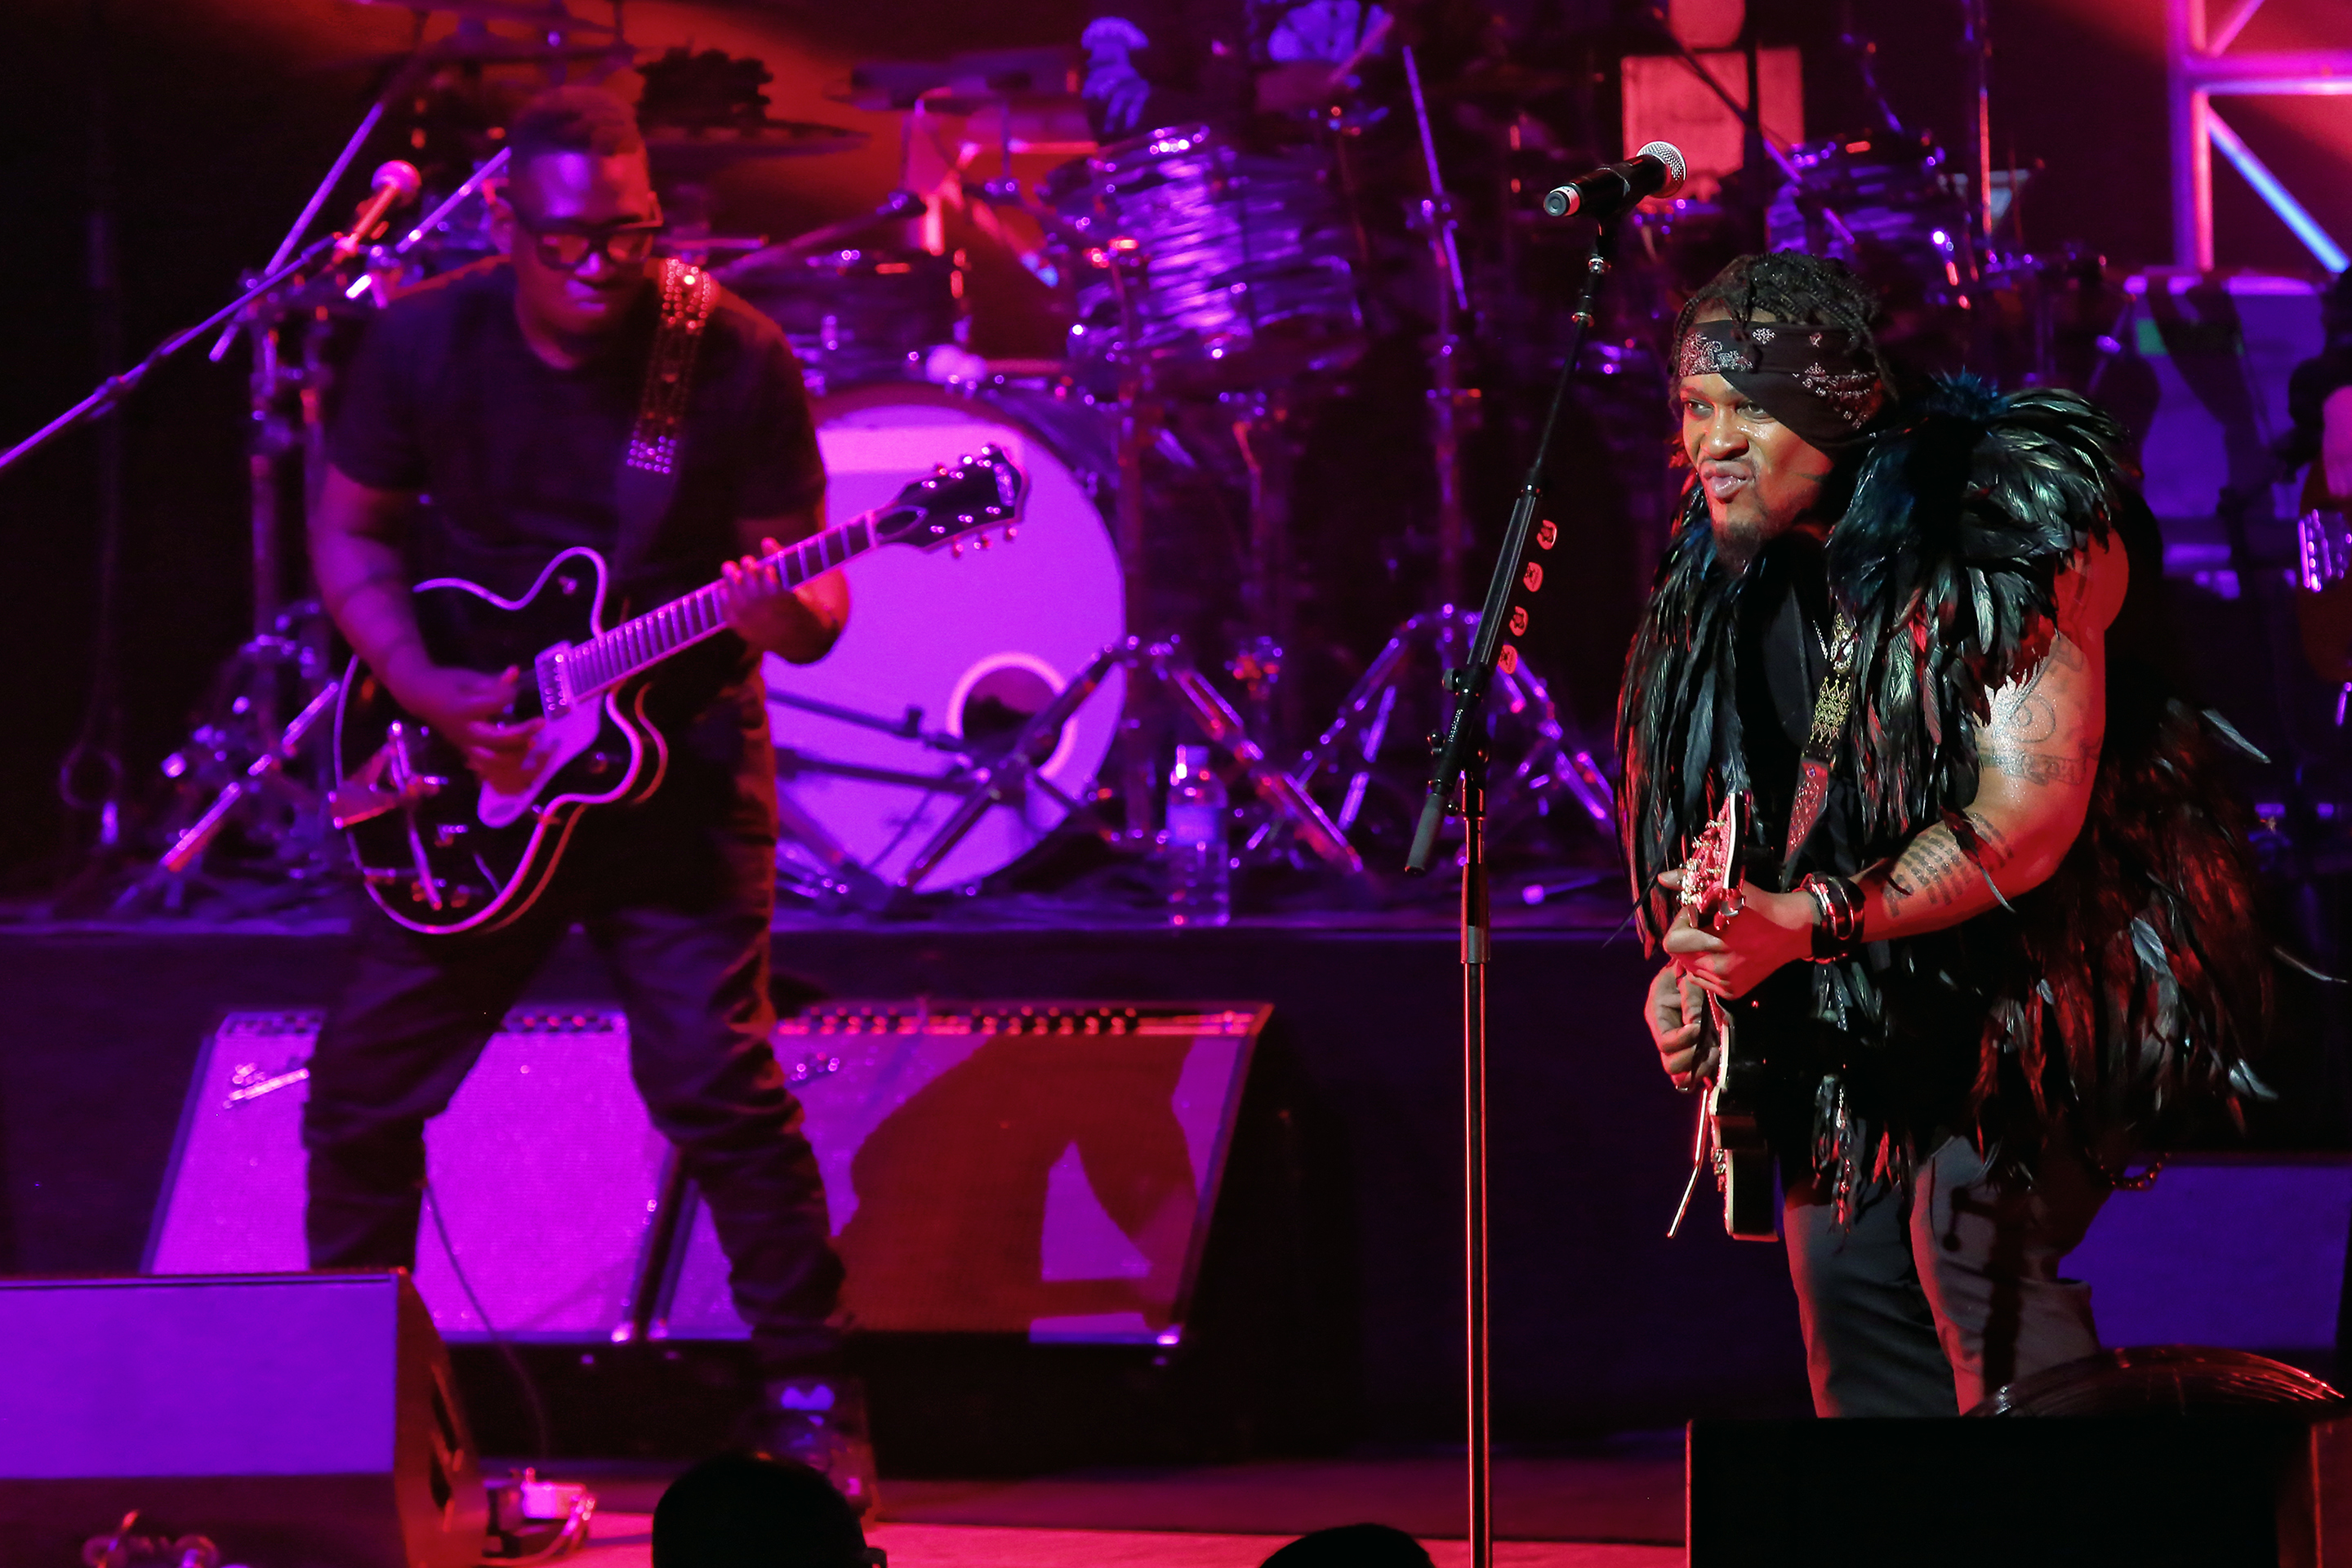 Dangelo Raises The Roof At The Sydney Opera House